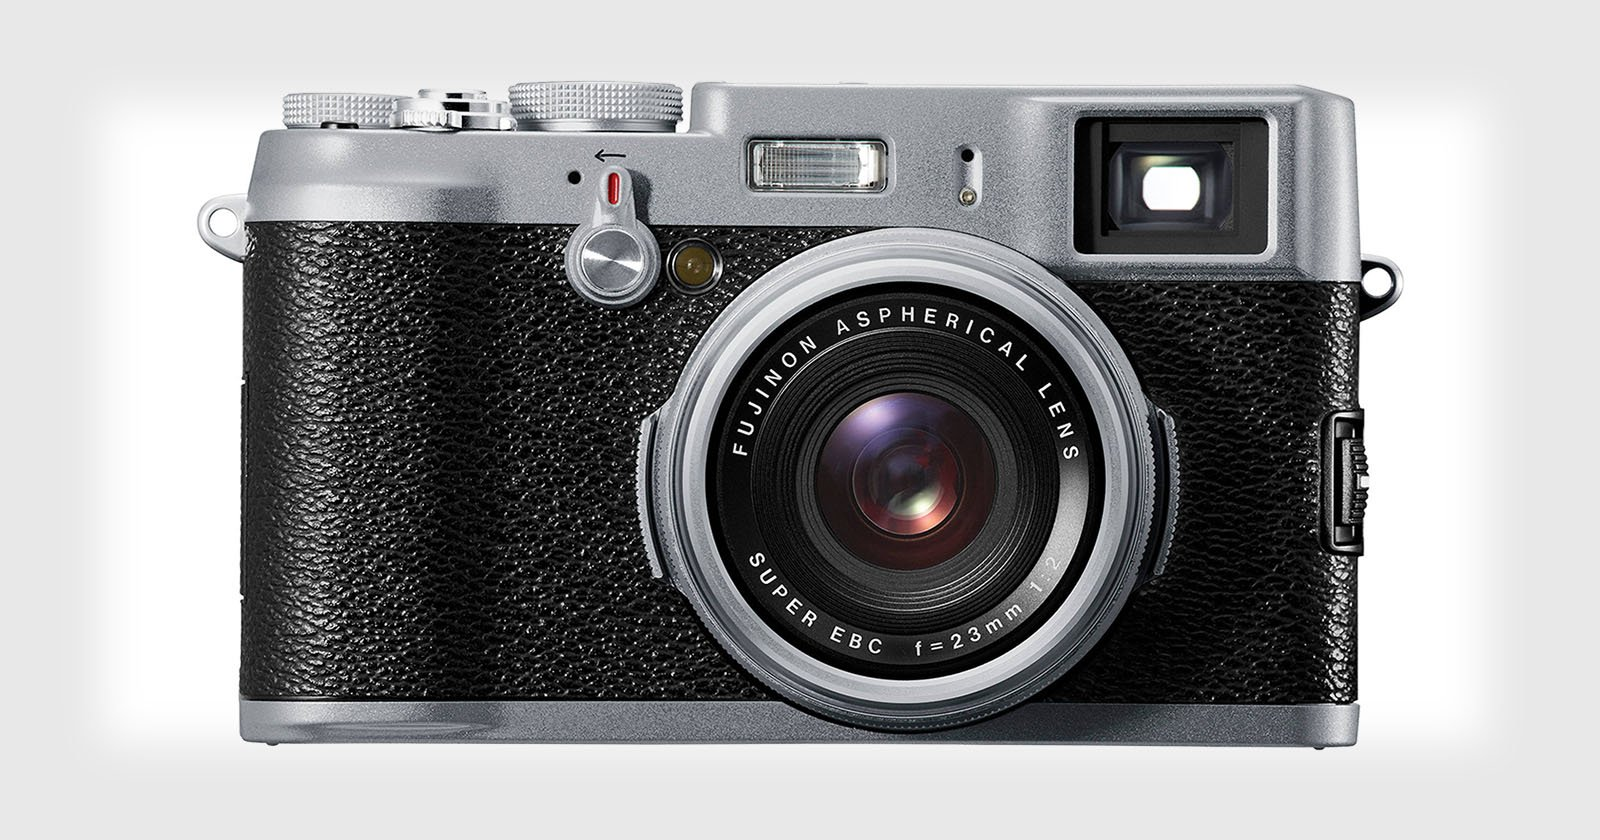 3 Ways the Fuji X100 Changed the Camera Industry Forever